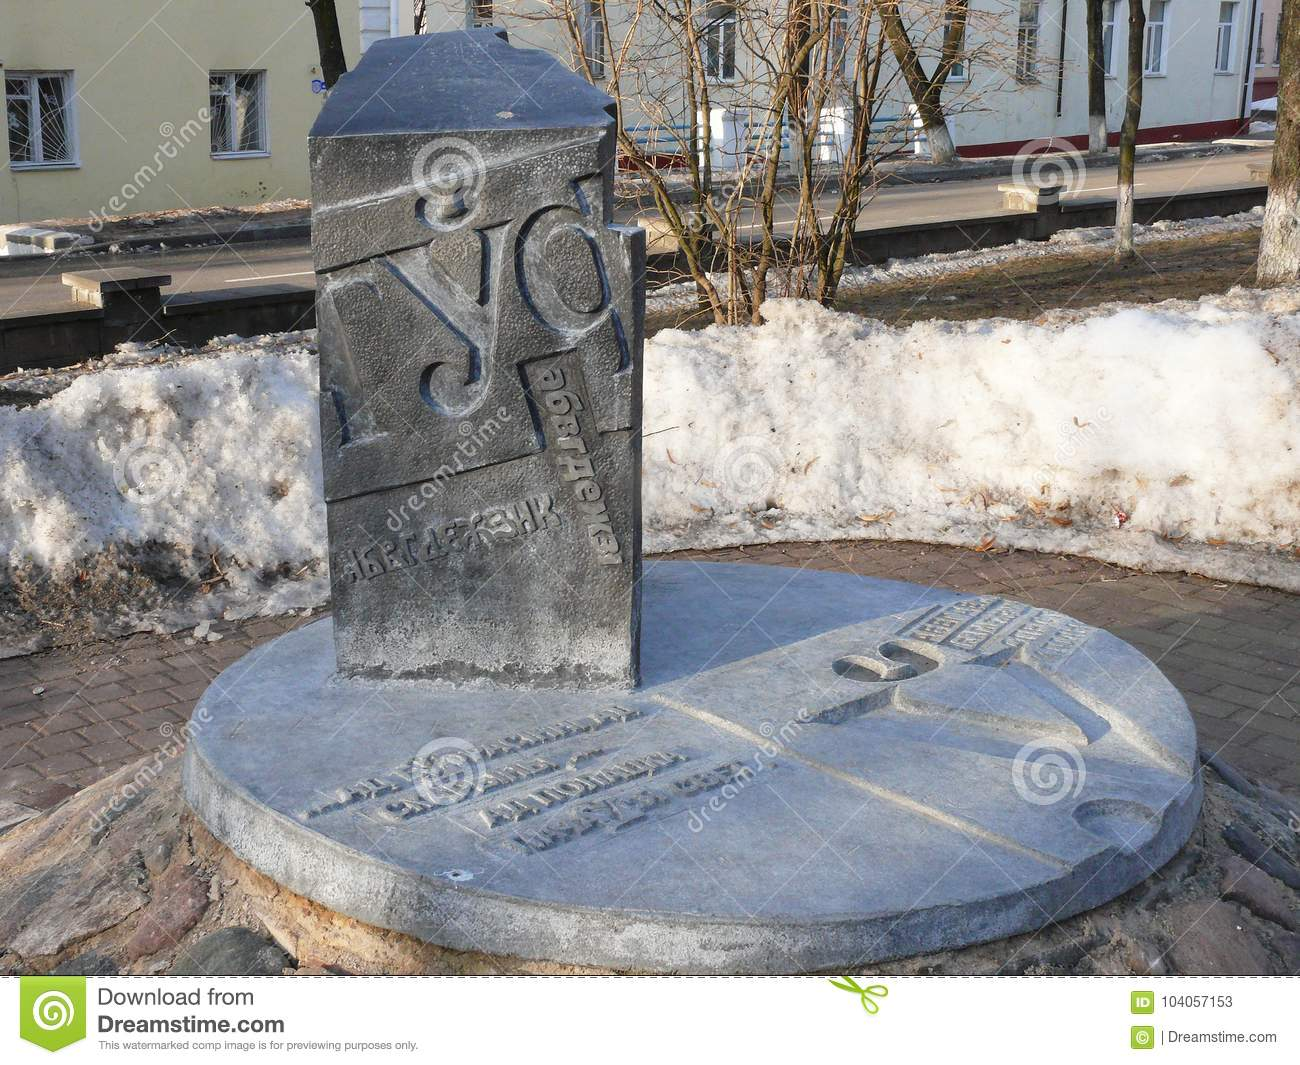 A memorial sign in the street of the spring town Polotsk